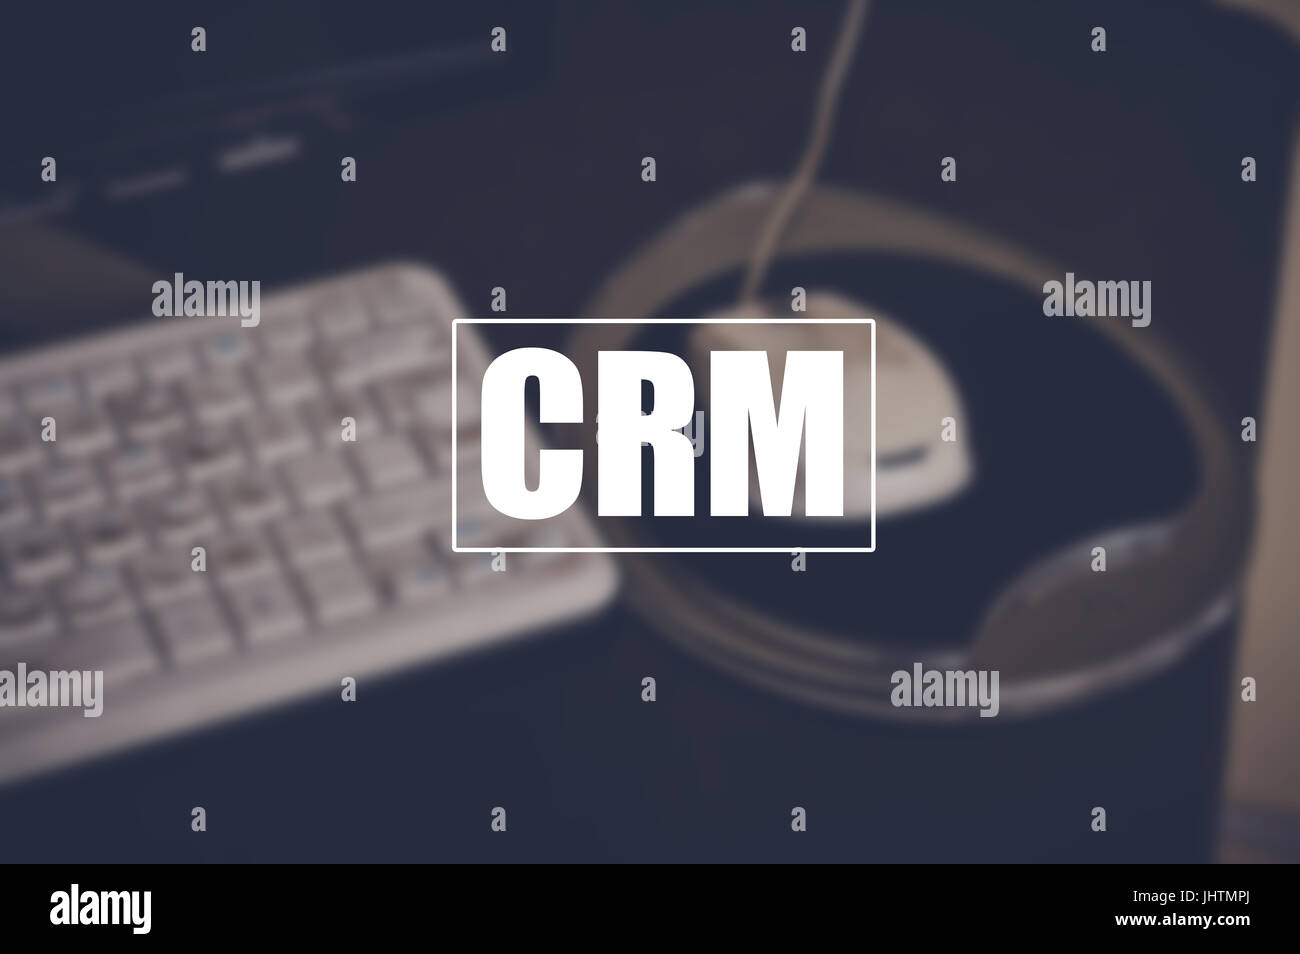 crm word with blurring business background, customer relationship management concept - Stock Image